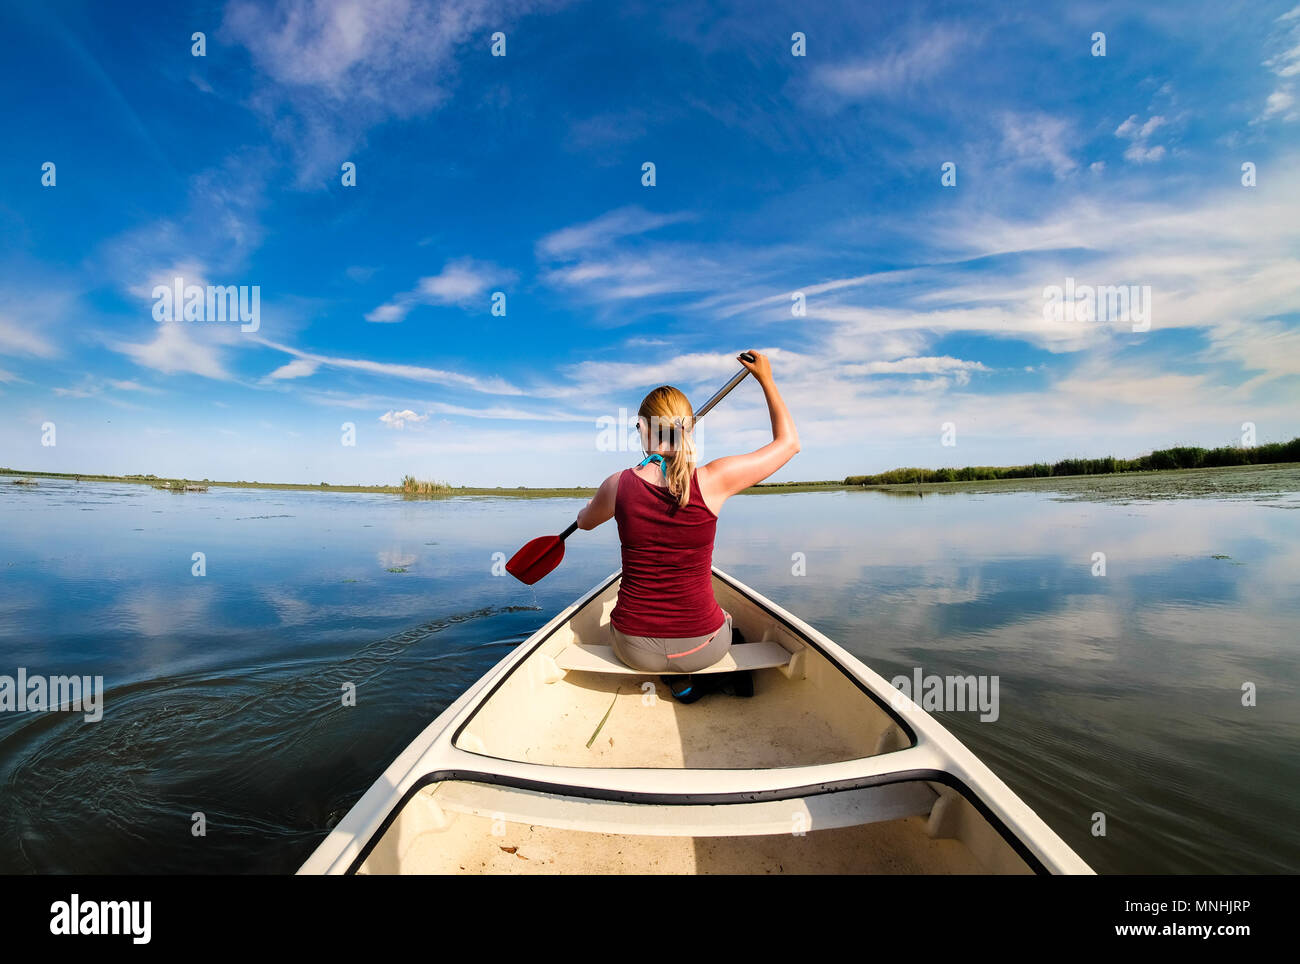 Woman exploding Danube Delta in a boat - Stock Image